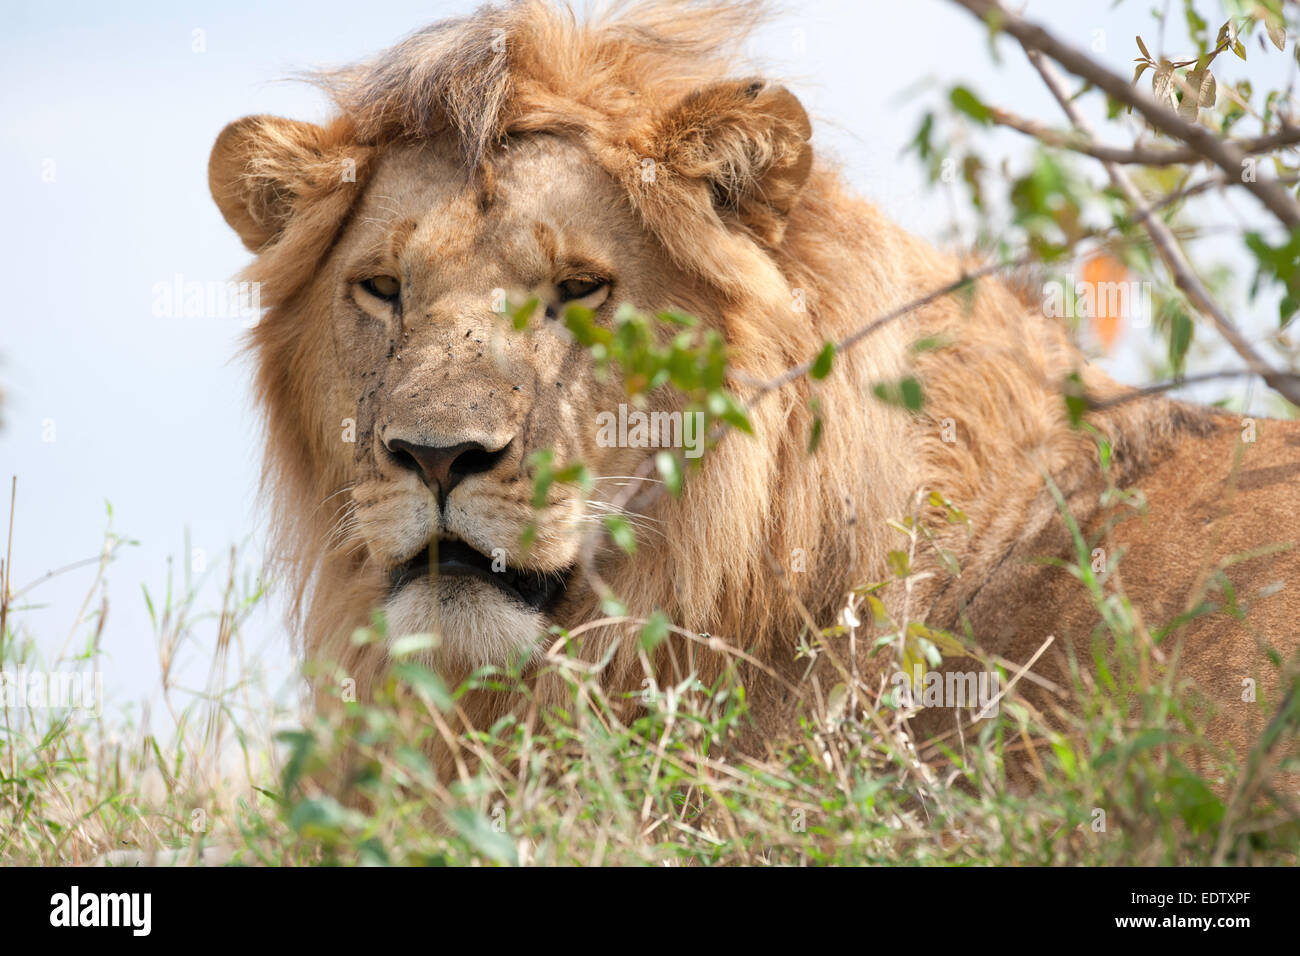 lion the king in the savannah of africa - Stock Image